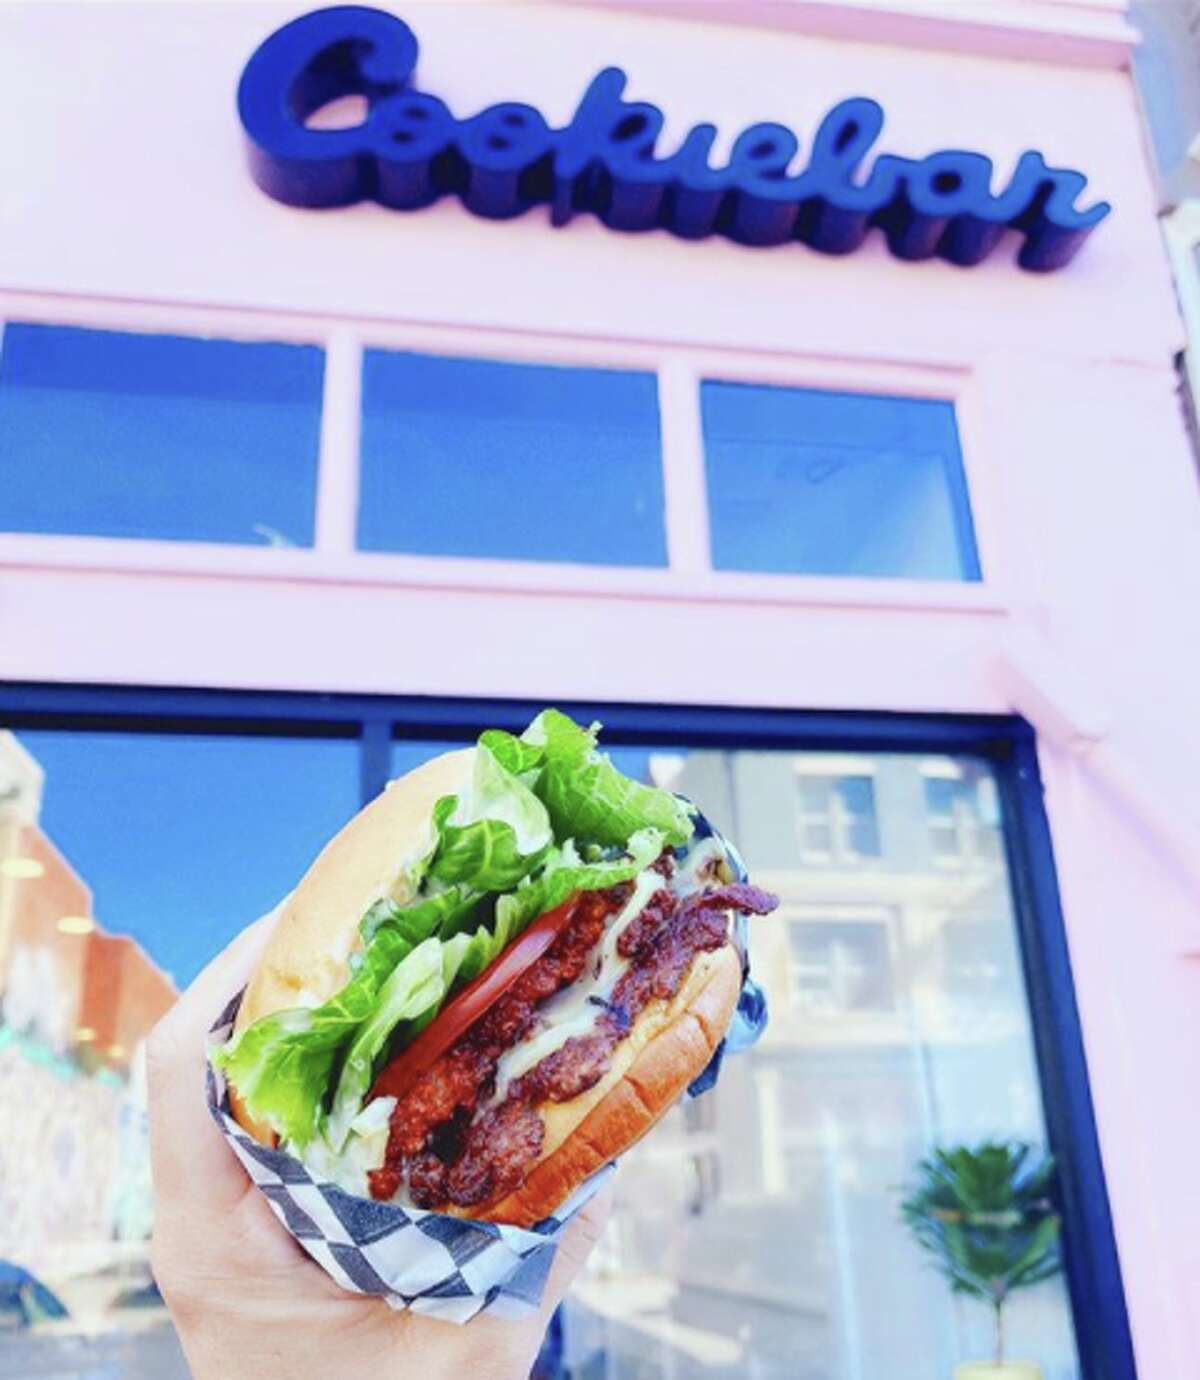 One of Smish Smash's burgers, as seen outside of its pop-up location at Cookiebar Creamery.